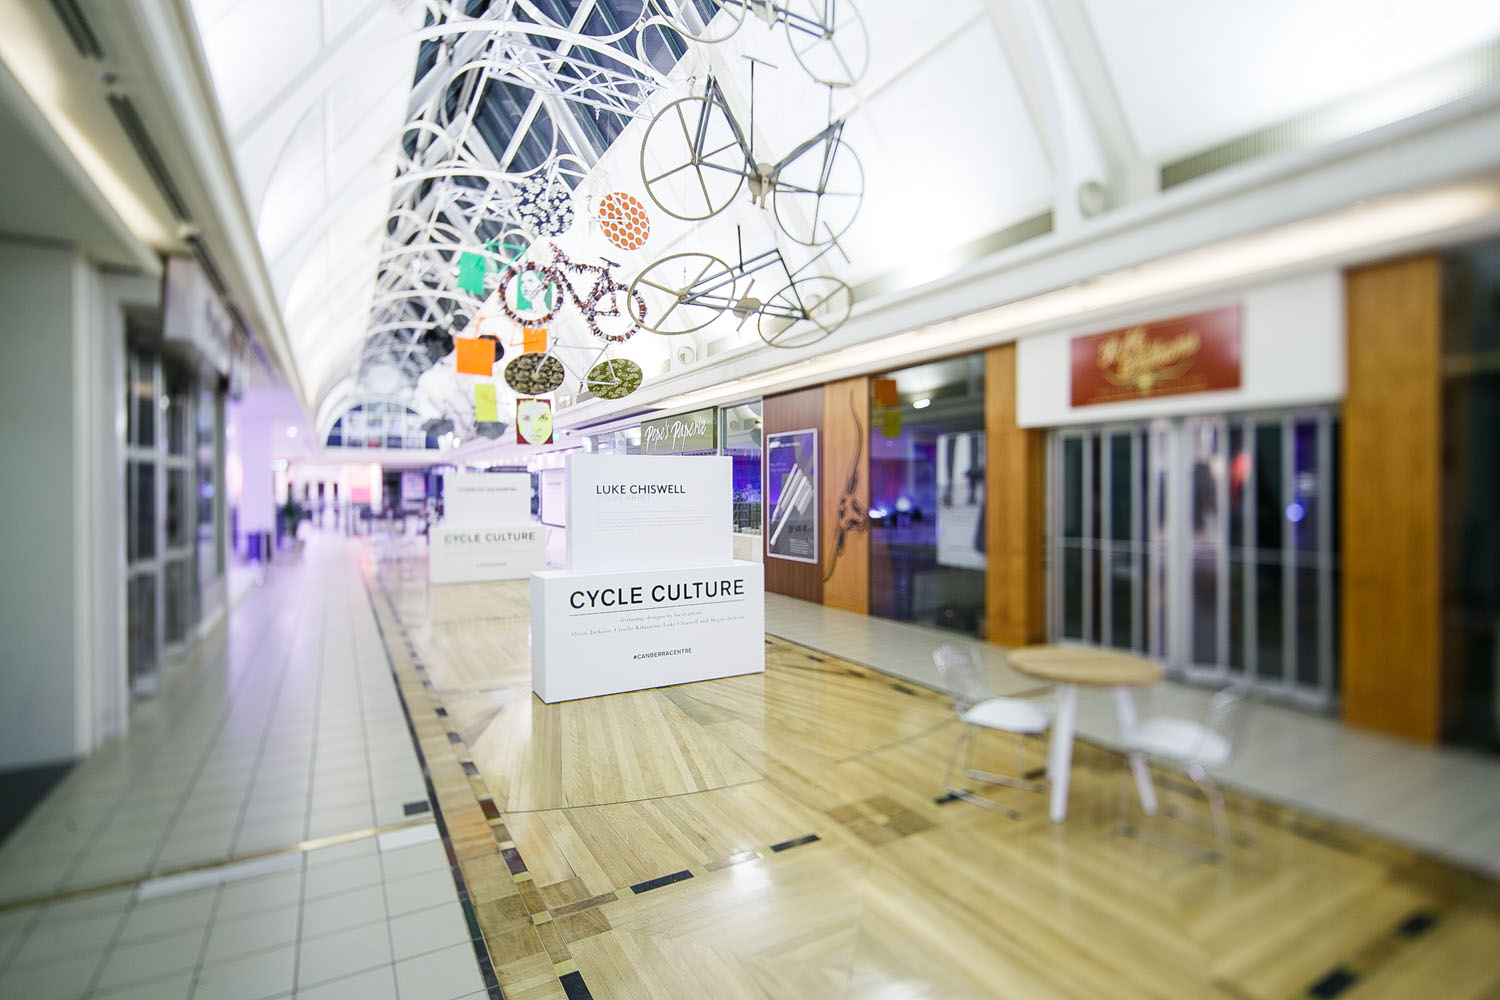 A modern spin on Canberra's cycle culture